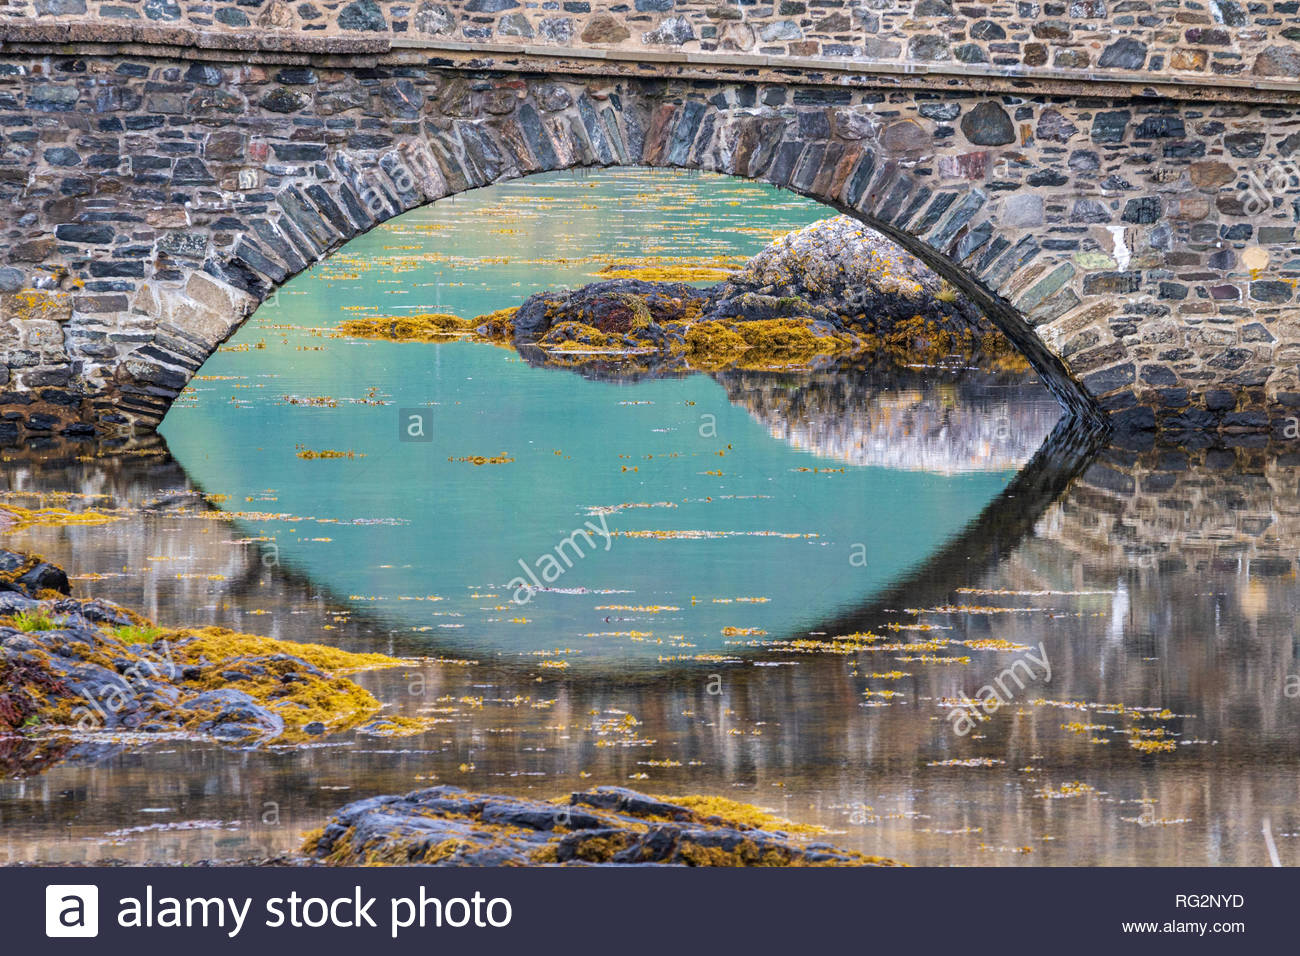 Smooth turquoise water surface beneath Eilean Donan Castle bridge, Scotland. - Stock Image